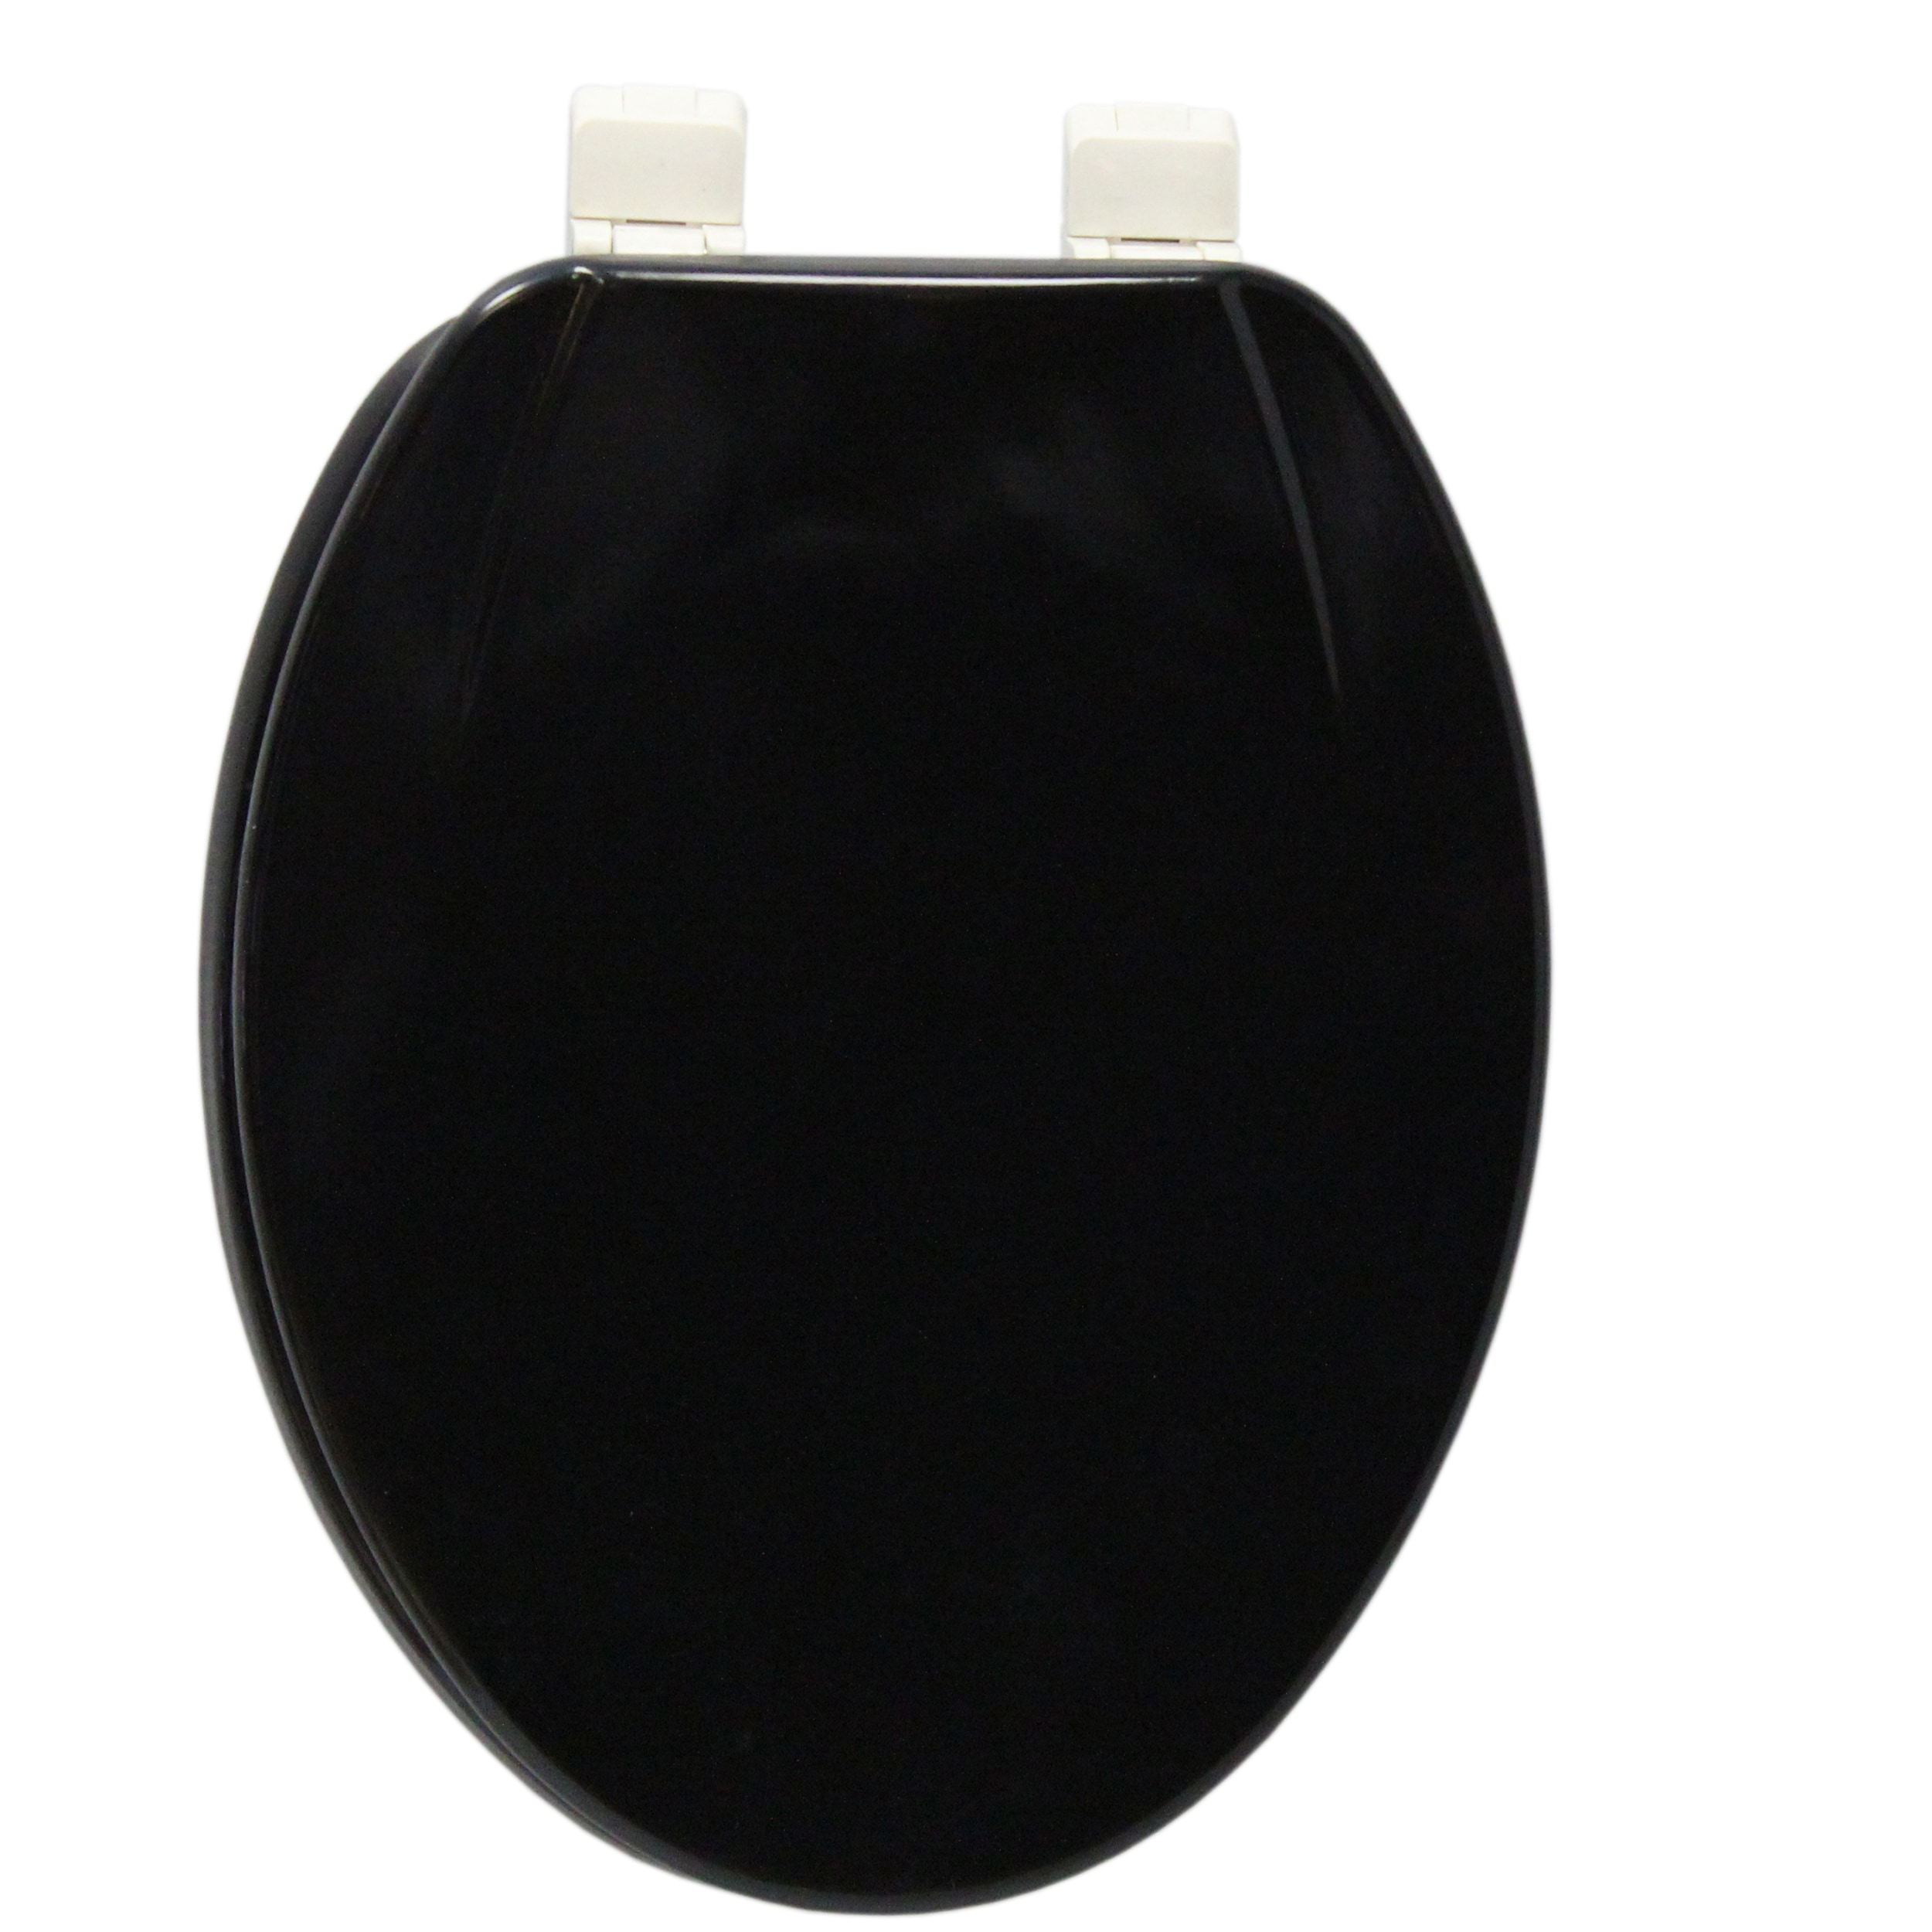 Swell Details About Elongated Black Molded Wood Solid Toilet Seat Black Ibusinesslaw Wood Chair Design Ideas Ibusinesslaworg